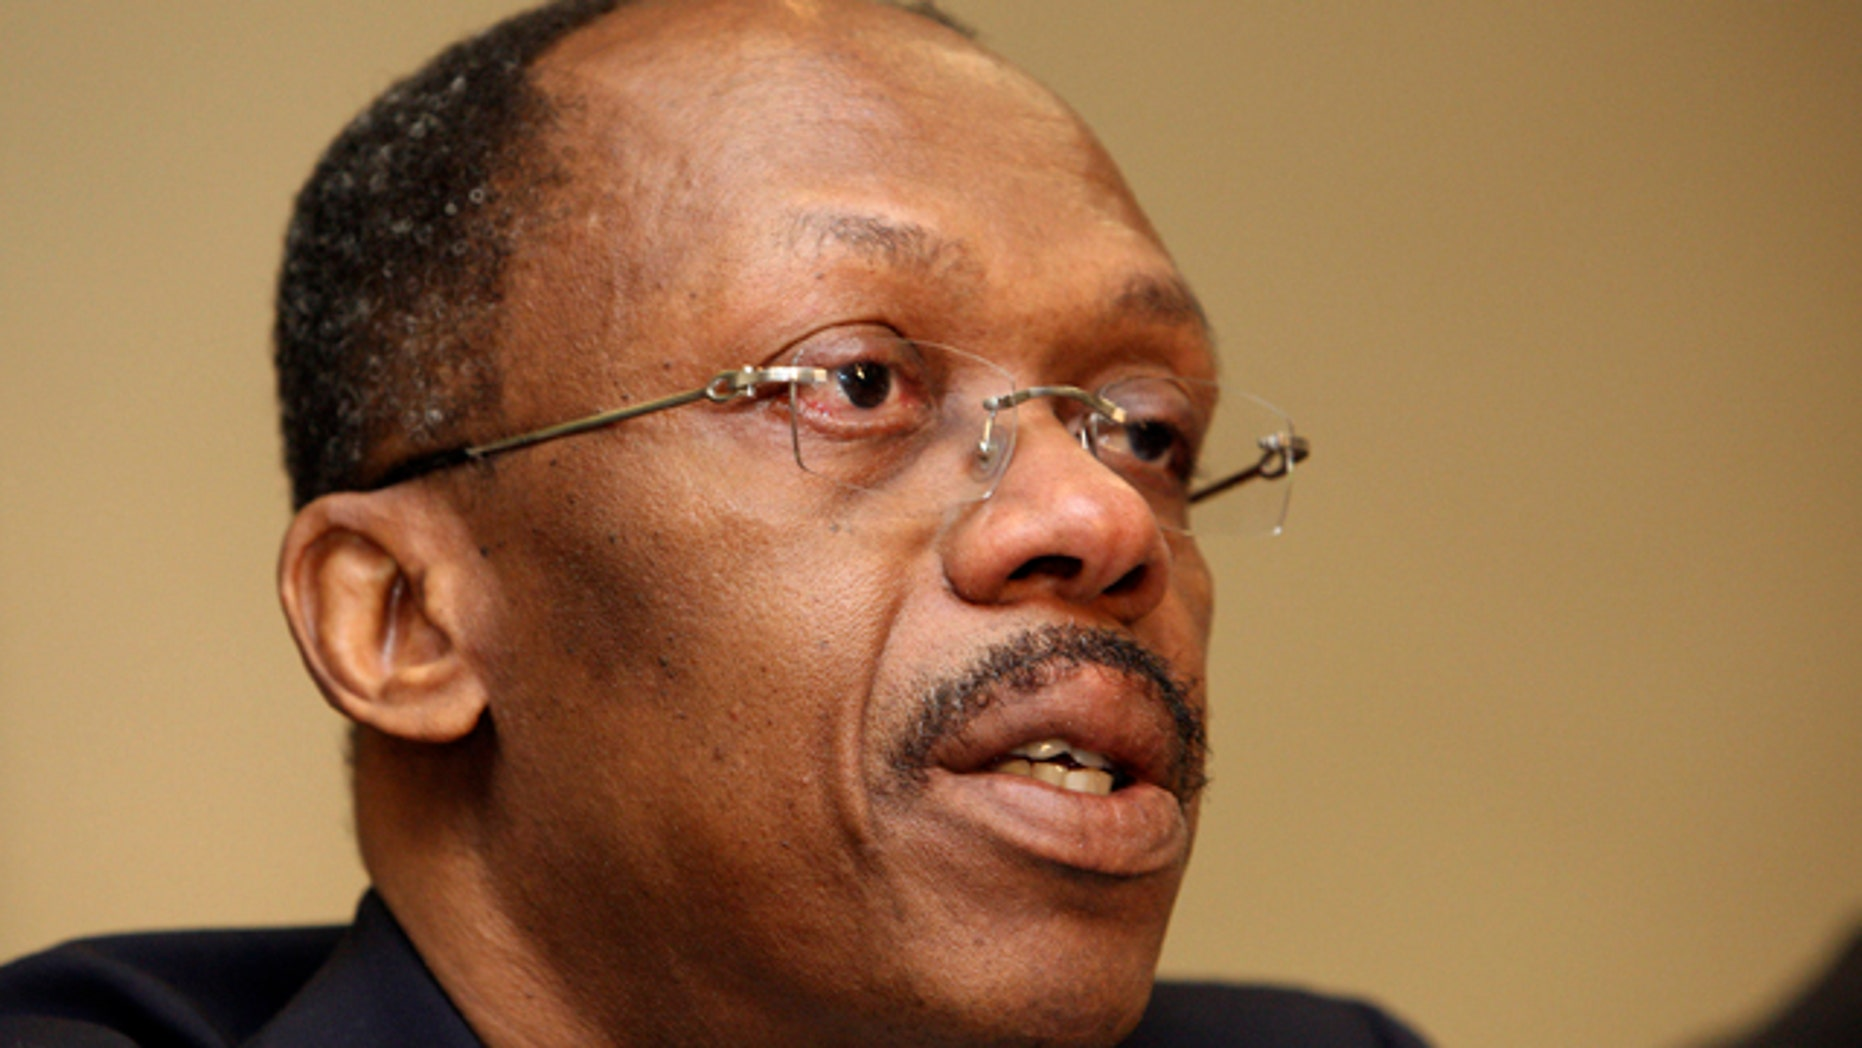 In this Jan. 15, 2010, file photo, Former Haitian President Jean-Bertrand Aristide speaks during a press conference in Johannesburg, South Africa.